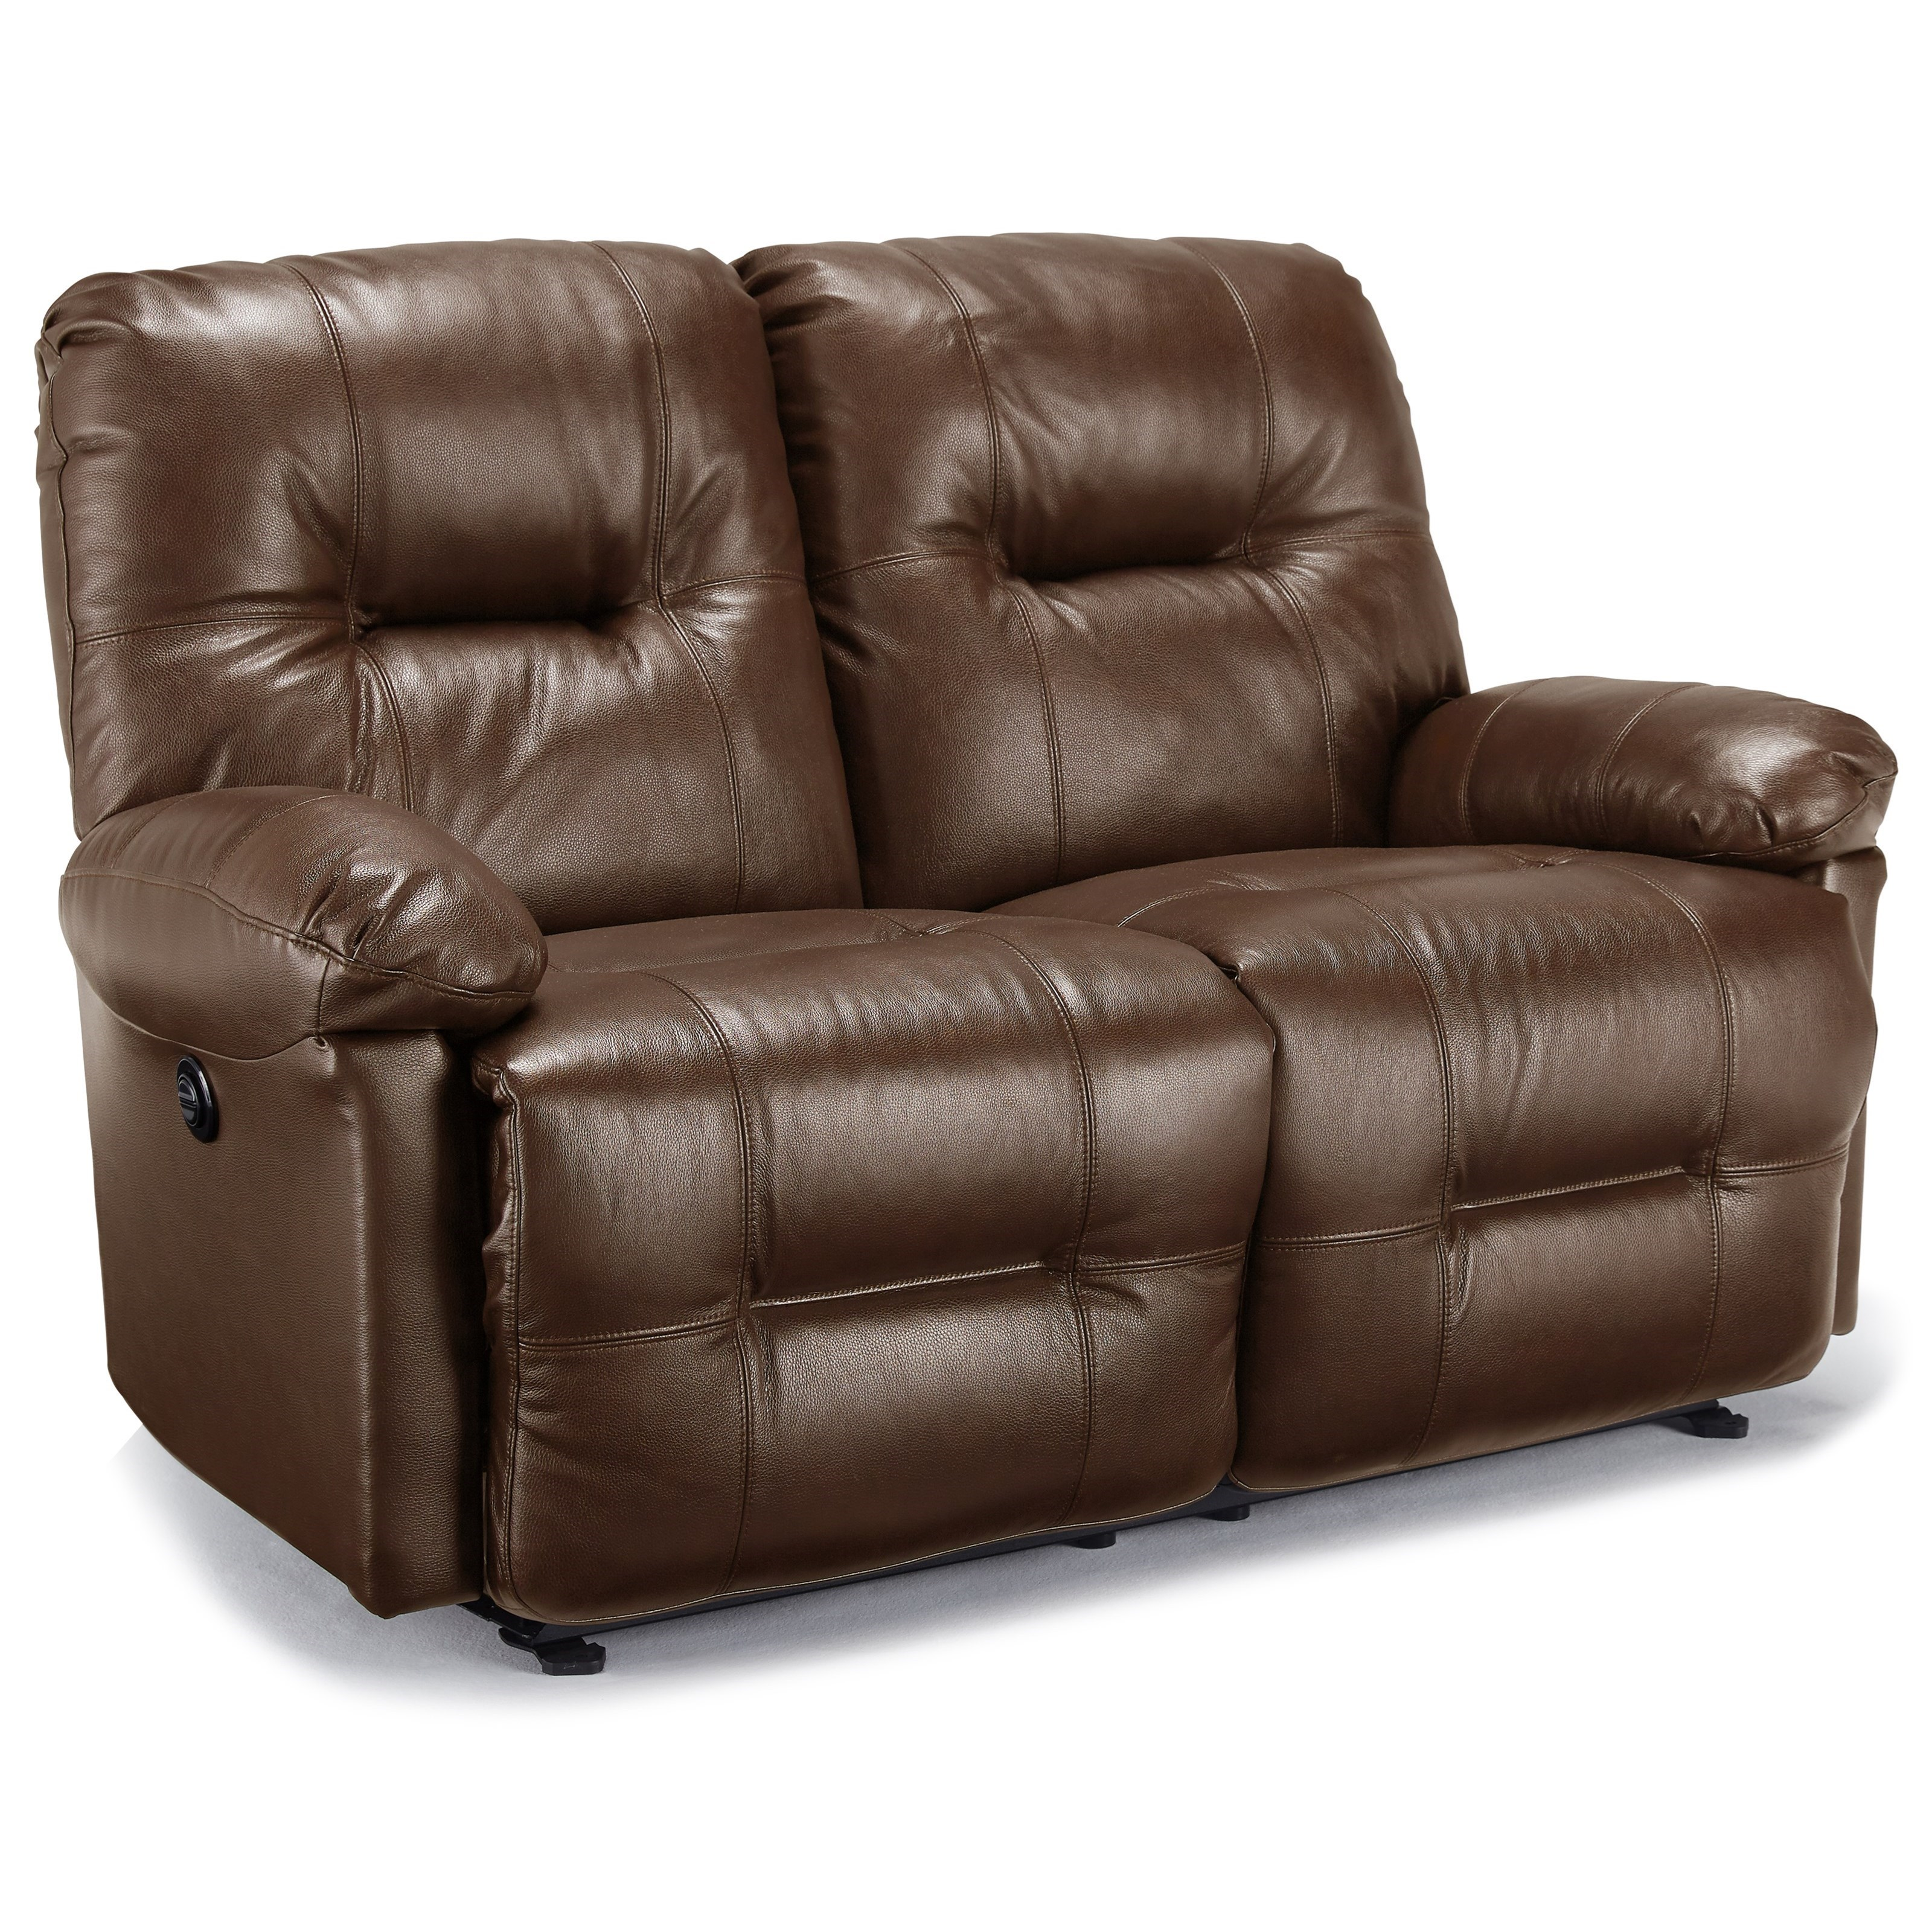 S501 Zaynah Reclining Loveseat by Best Home Furnishings at Best Home Furnishings